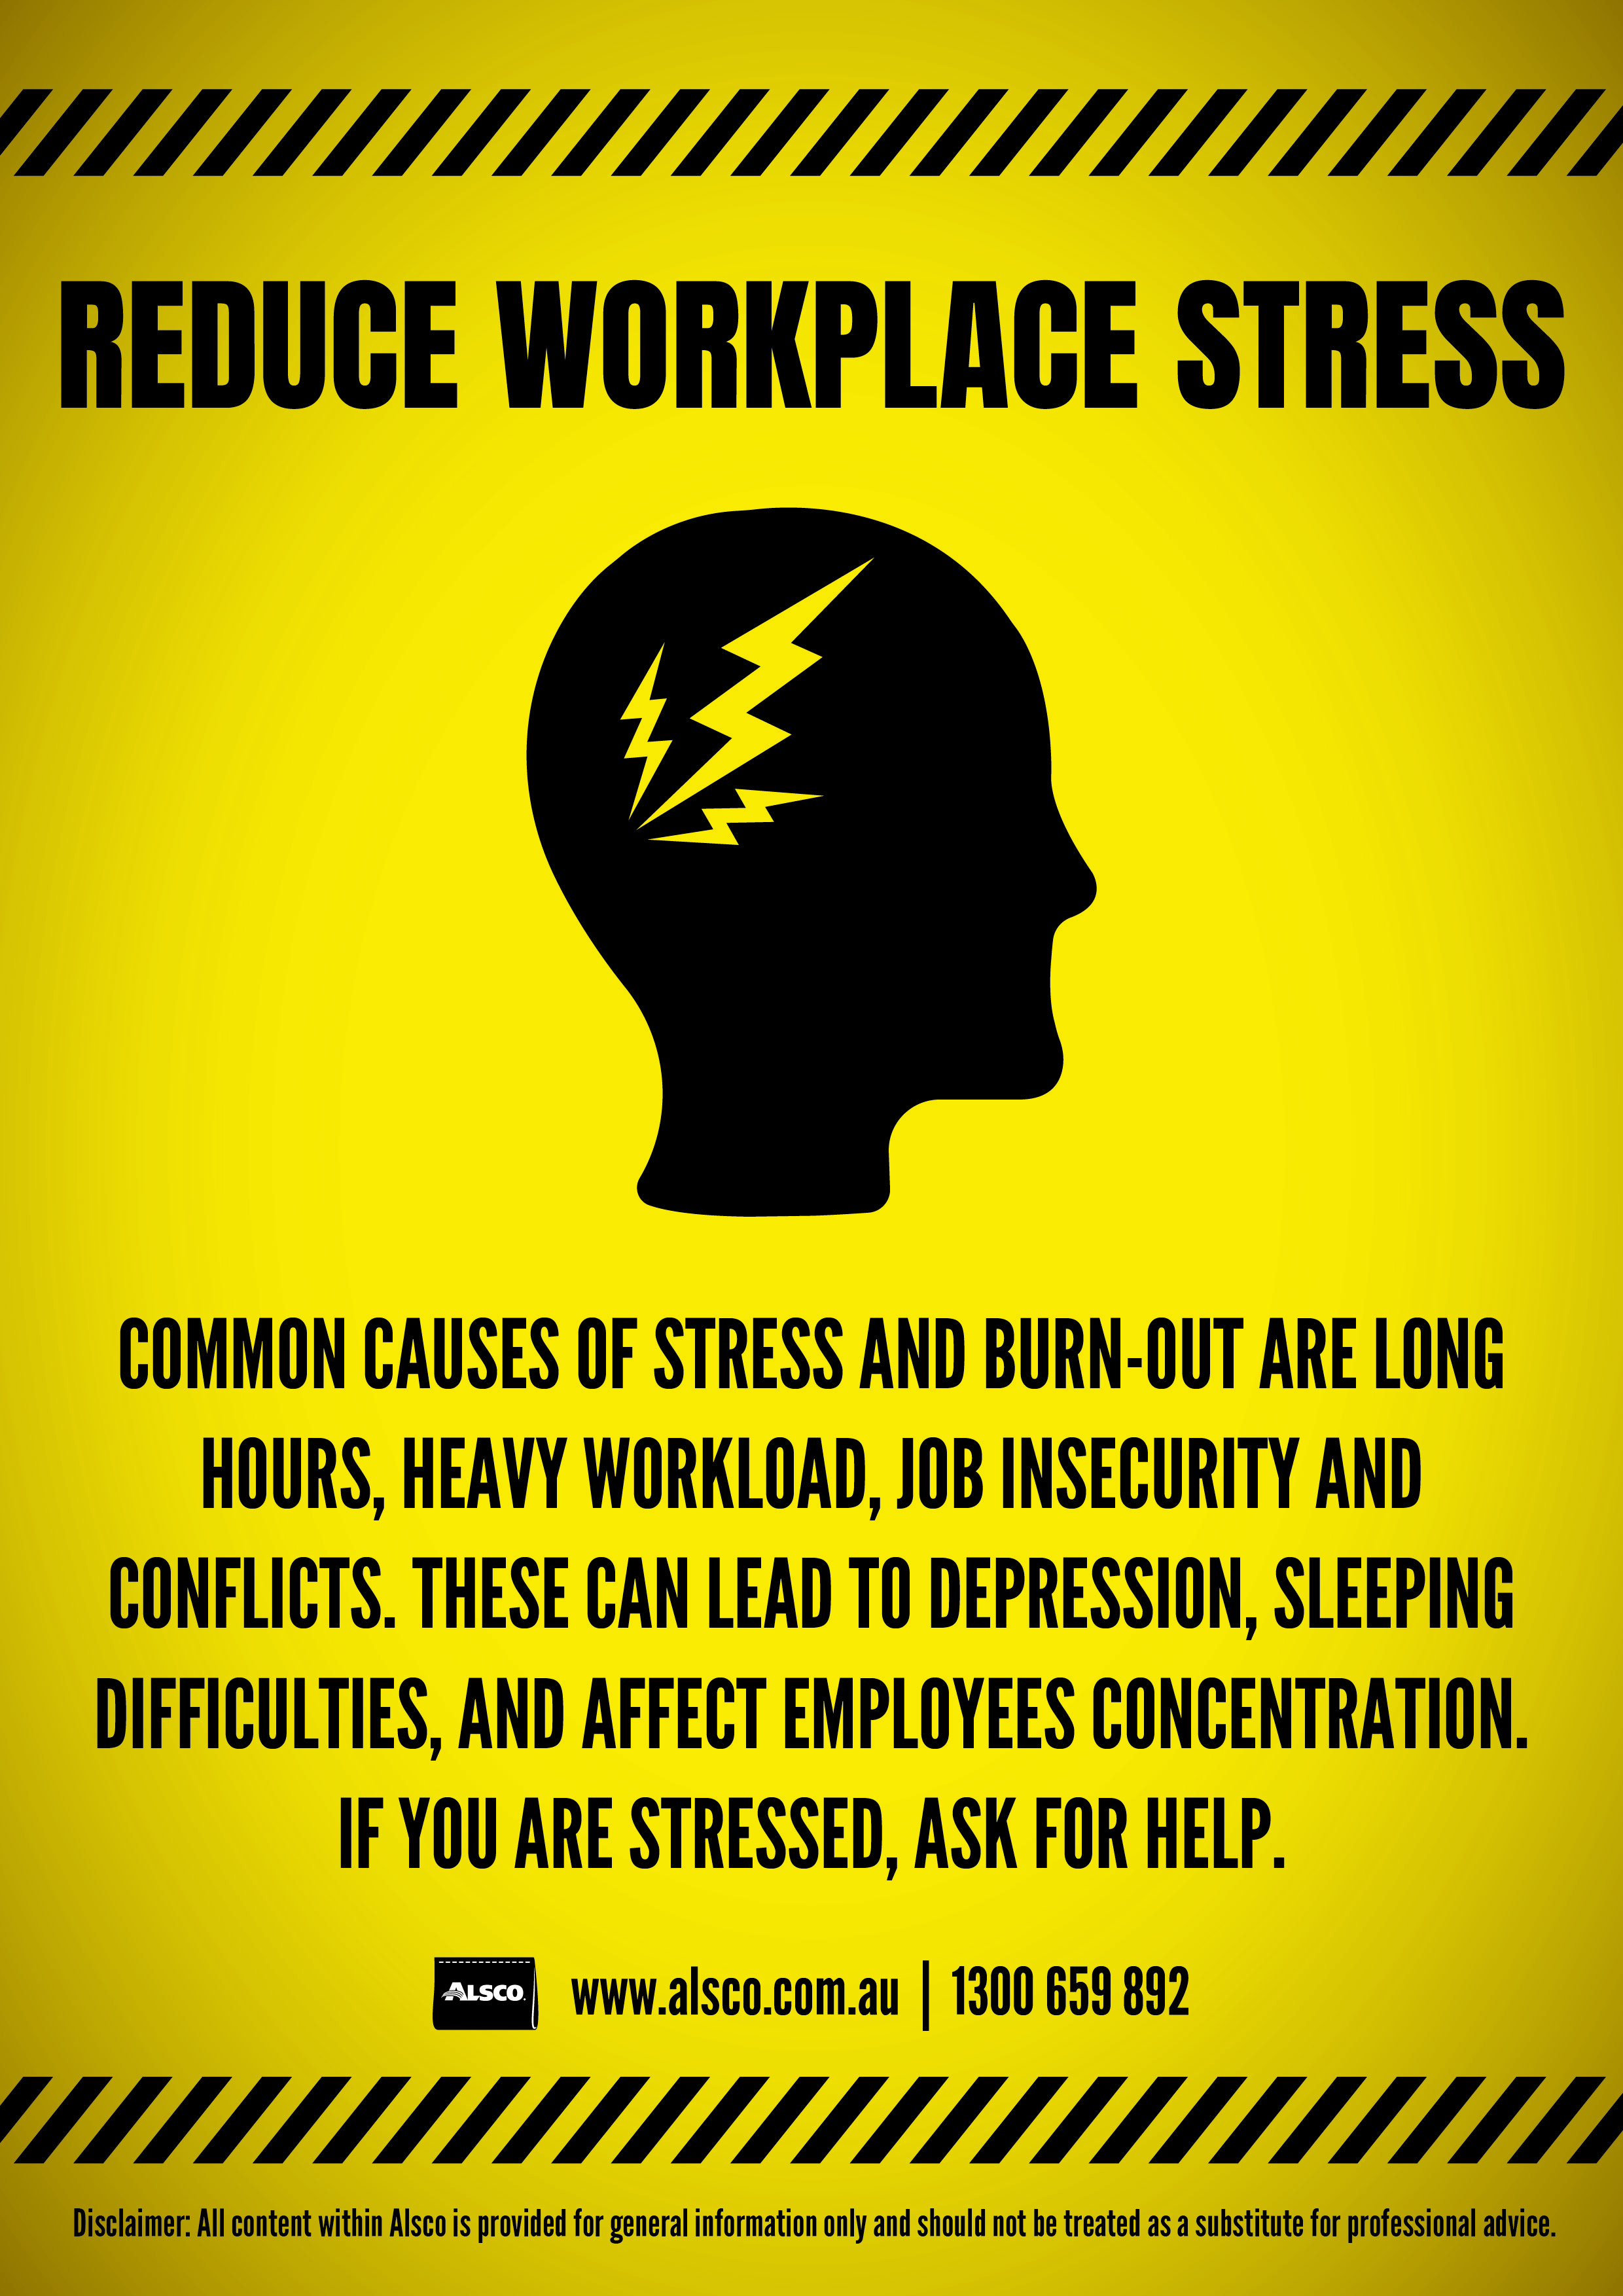 Unwind, rest or ask for help if you are stressed